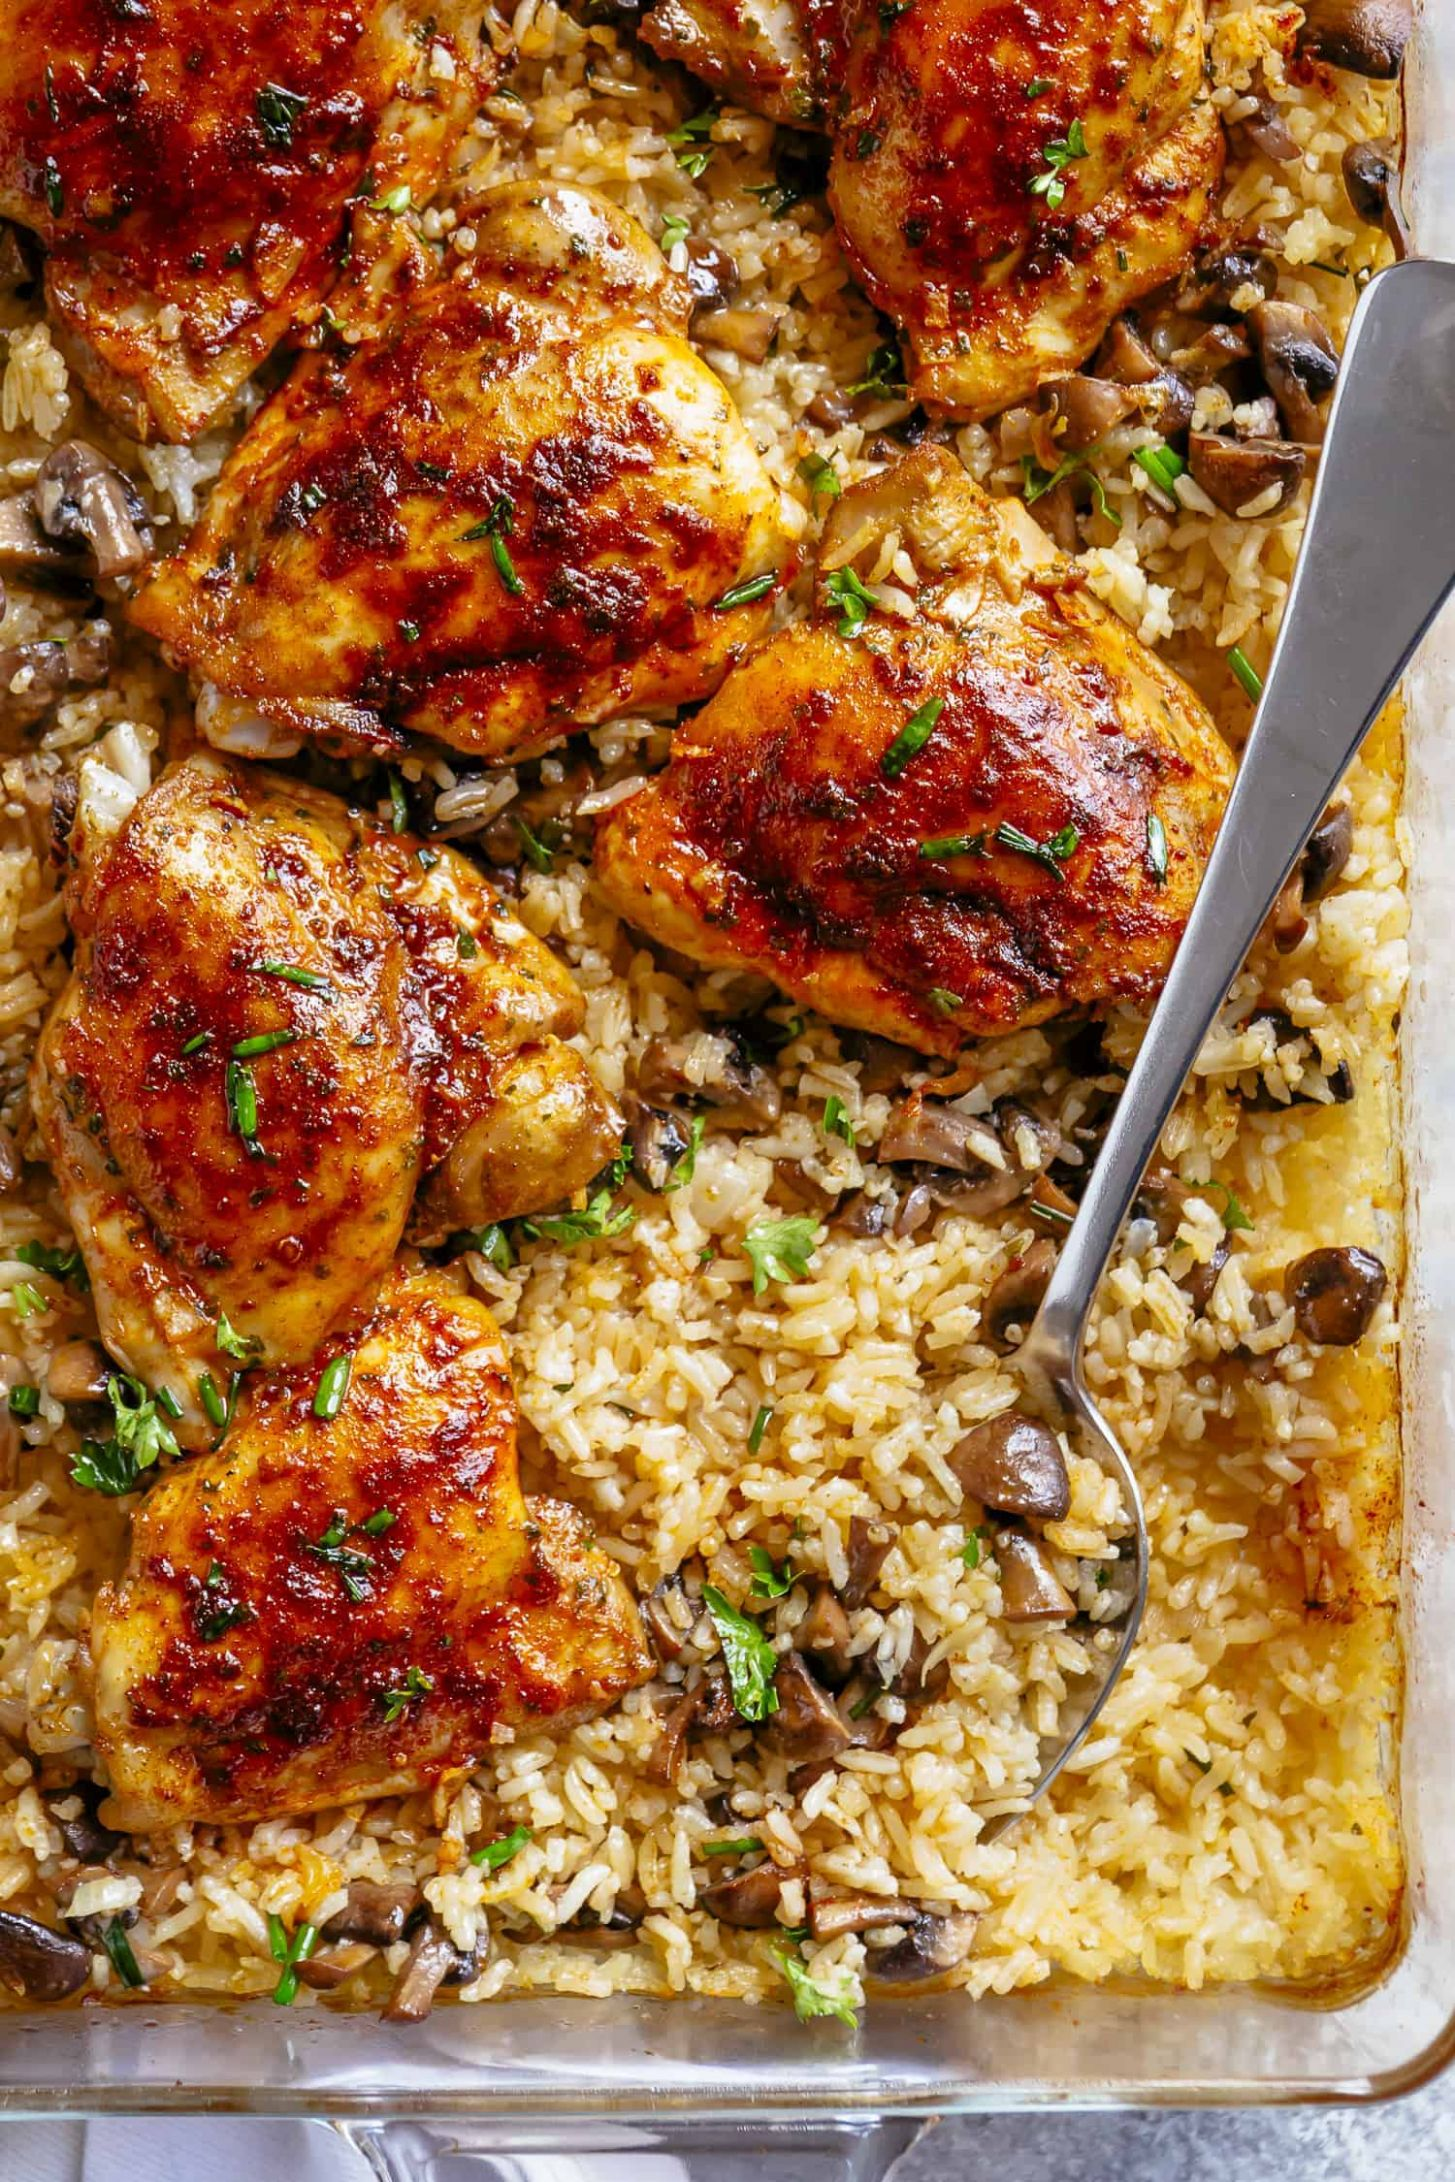 Oven Baked Chicken and Rice - Recipes Chicken In Oven